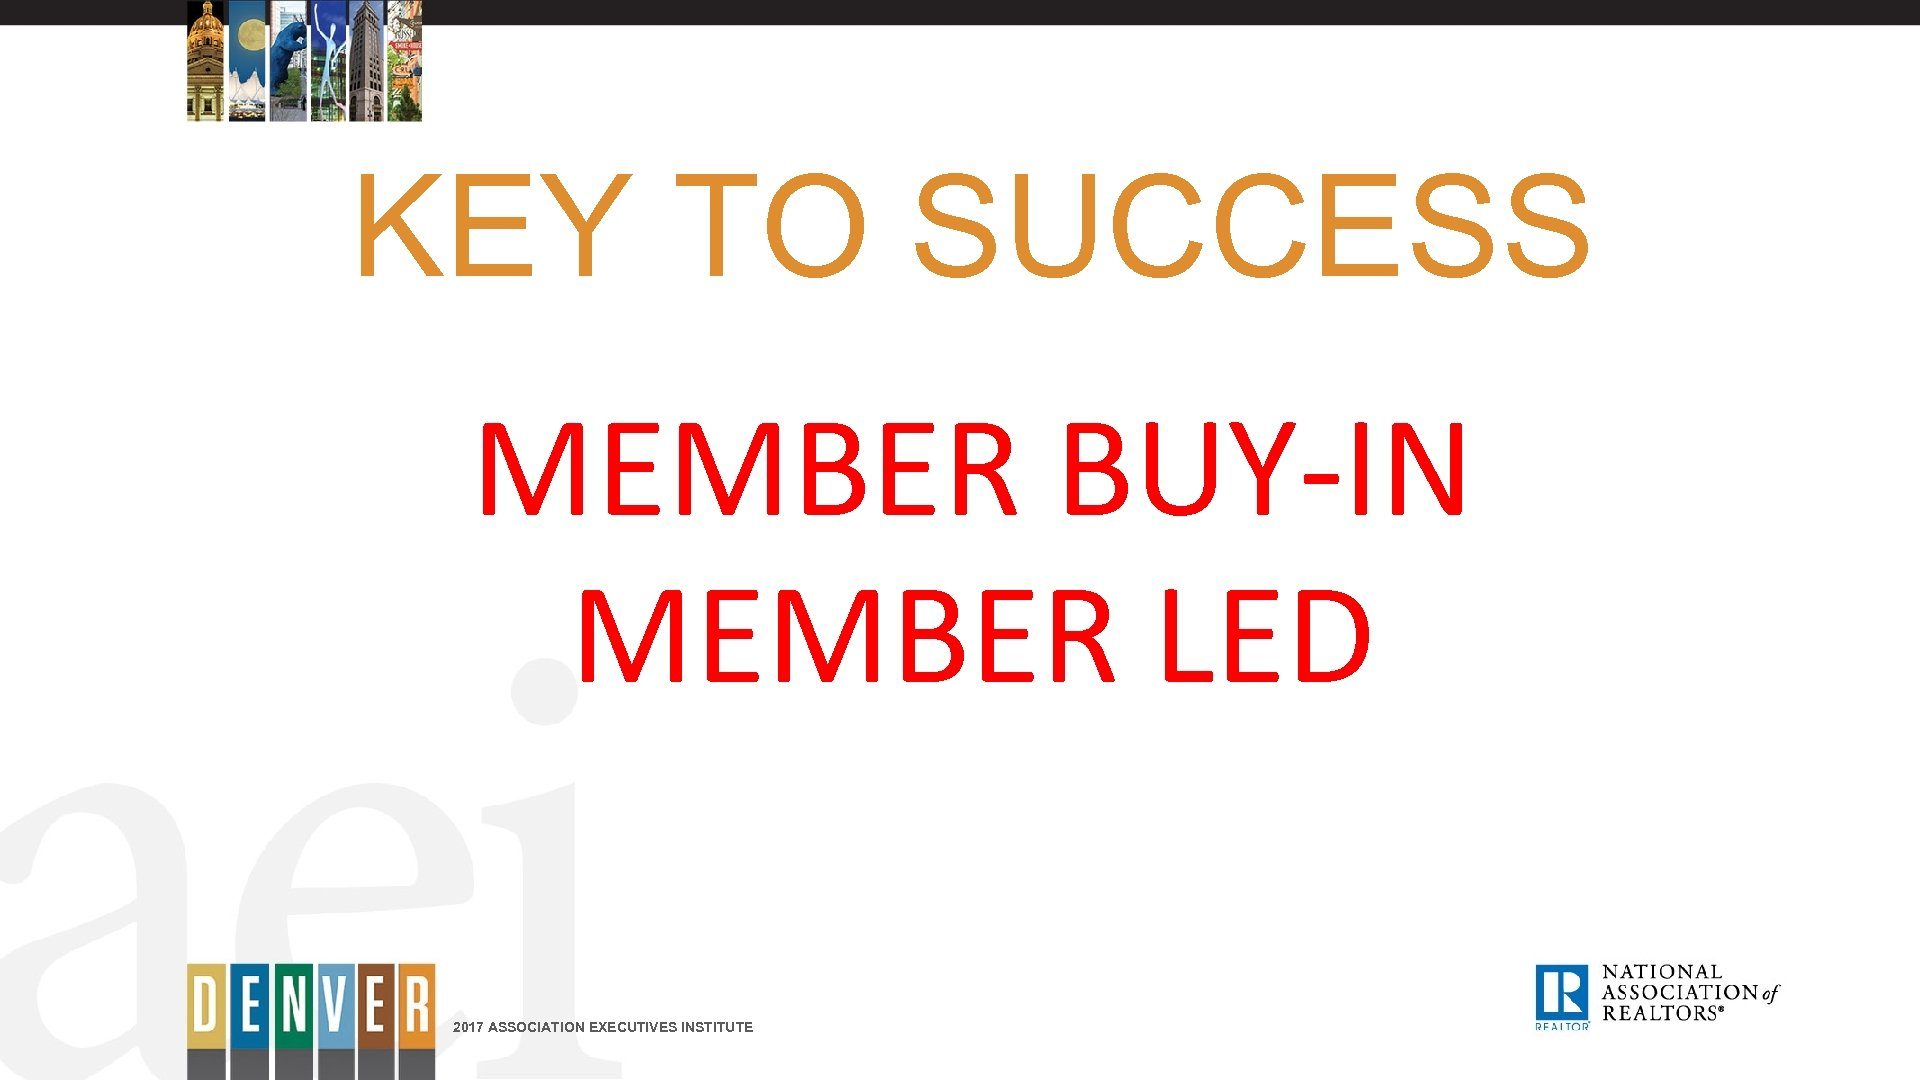 KEY TO SUCCESS MEMBER BUY-IN MEMBER LED 2017 ASSOCIATION EXECUTIVES INSTITUTE